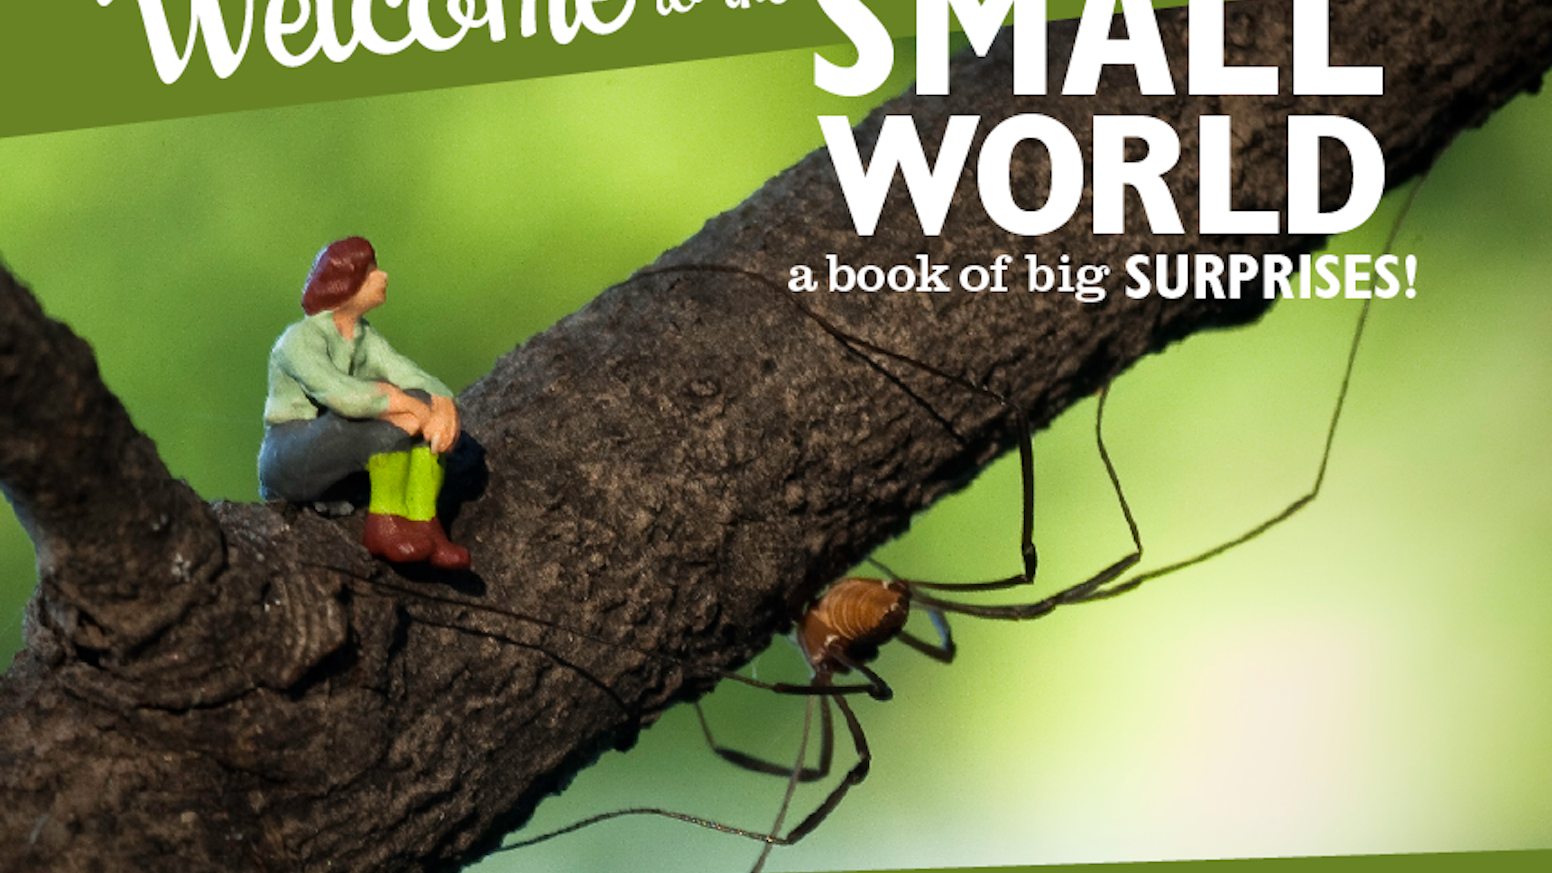 There are tiny people living right here in our big world. And here's our book to prove it.